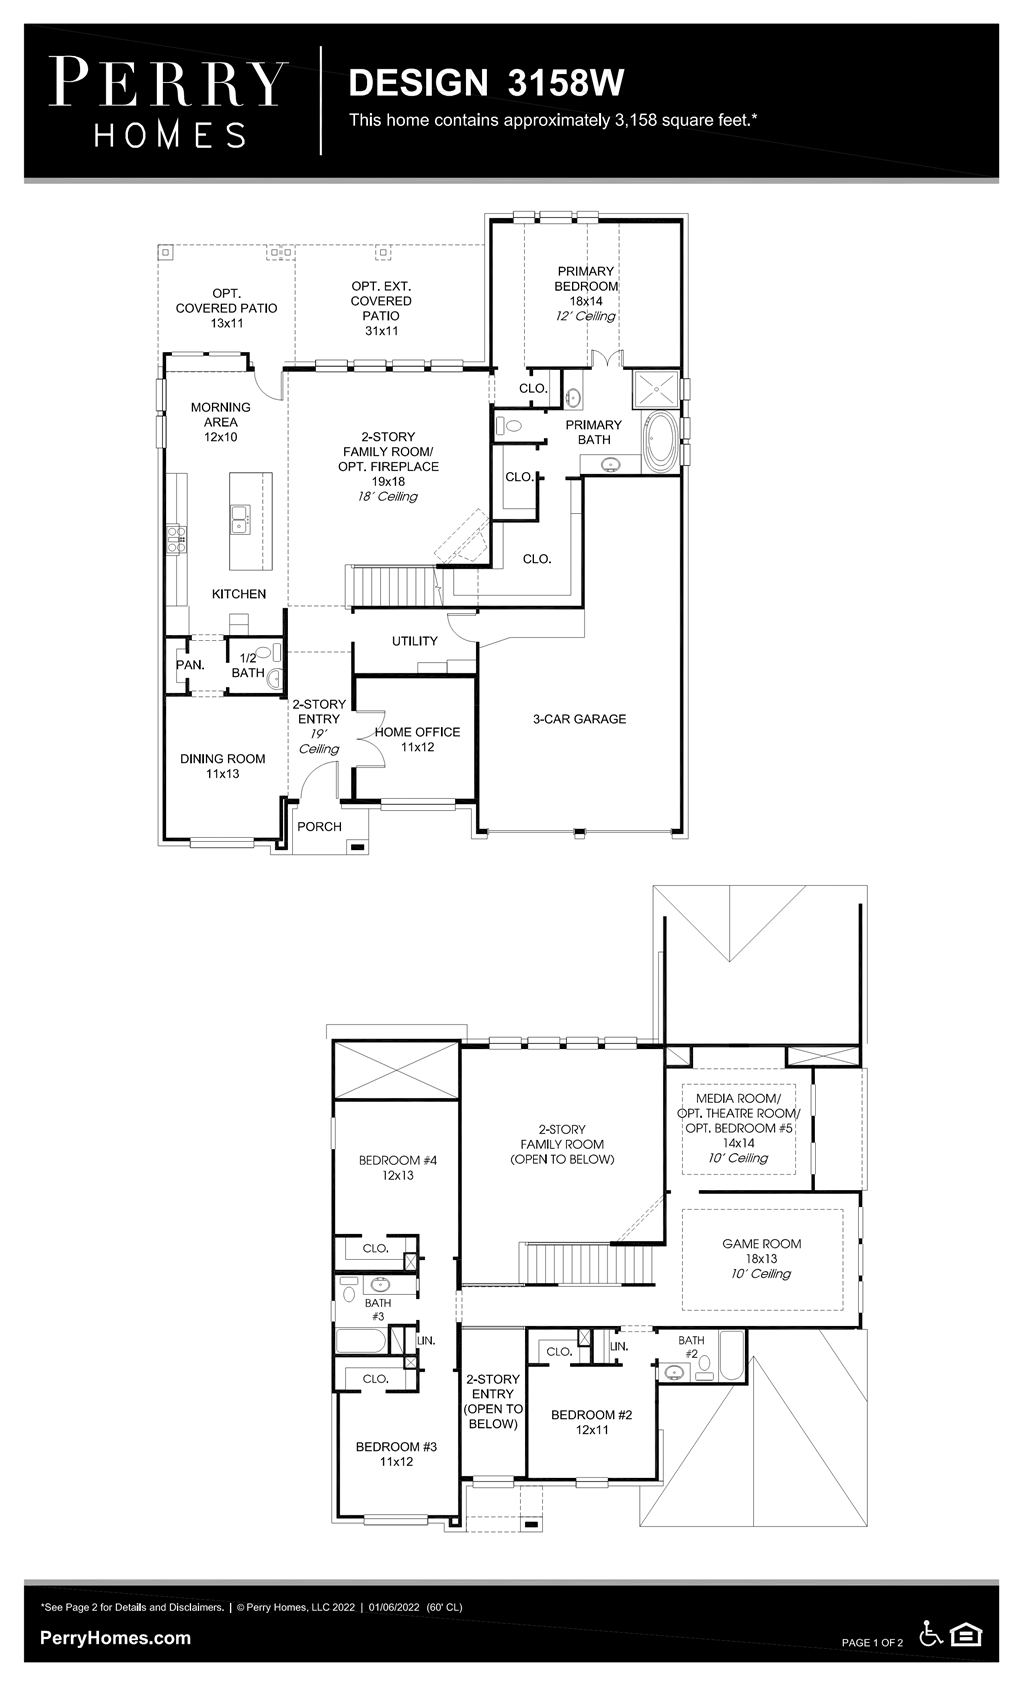 Floor Plan for 3158W